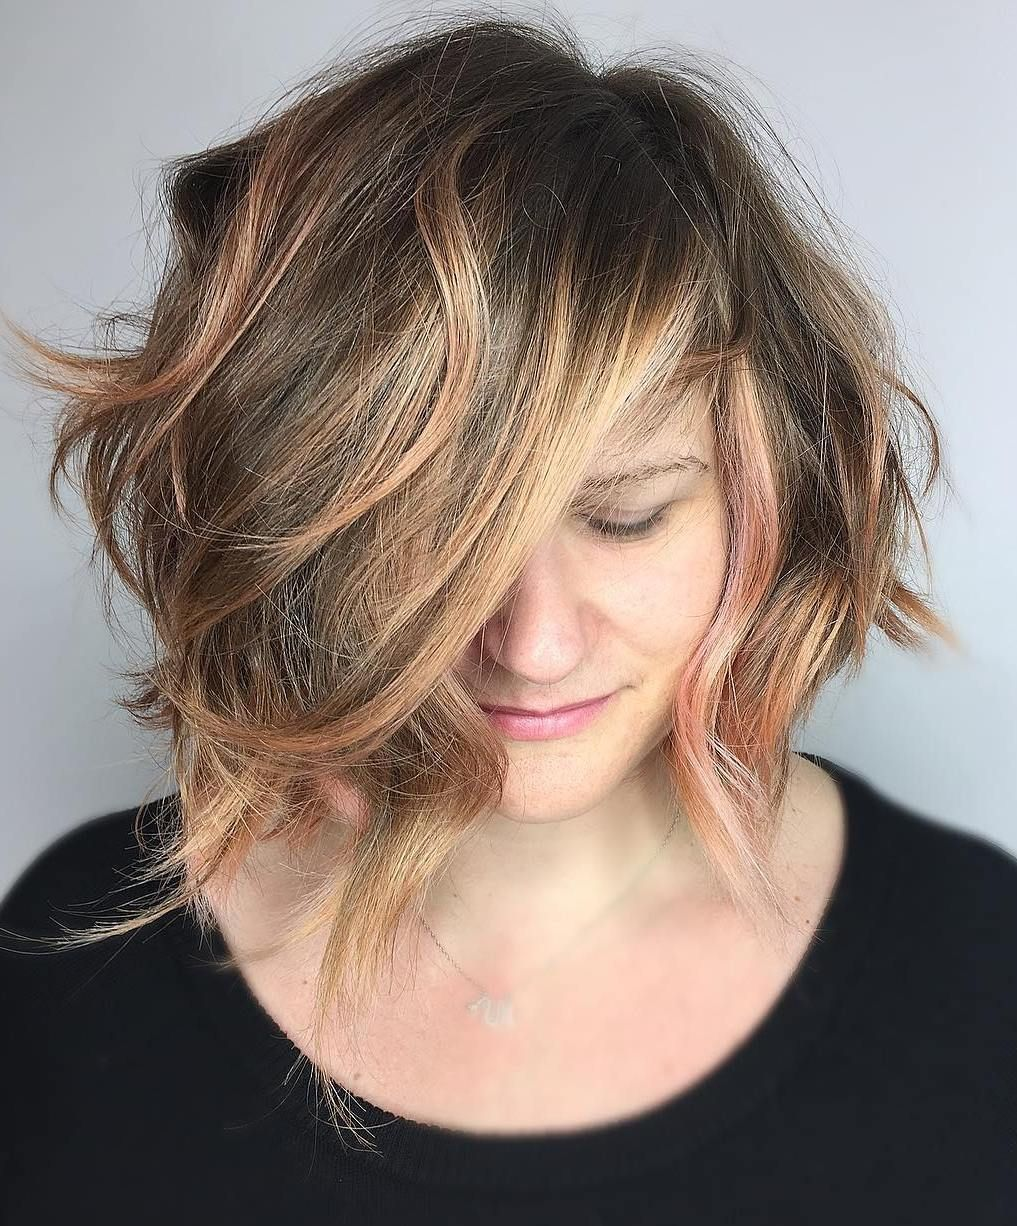 50 Super Cute Looks with Short Hairstyles for Round Faces | Short hair styles for round faces ...